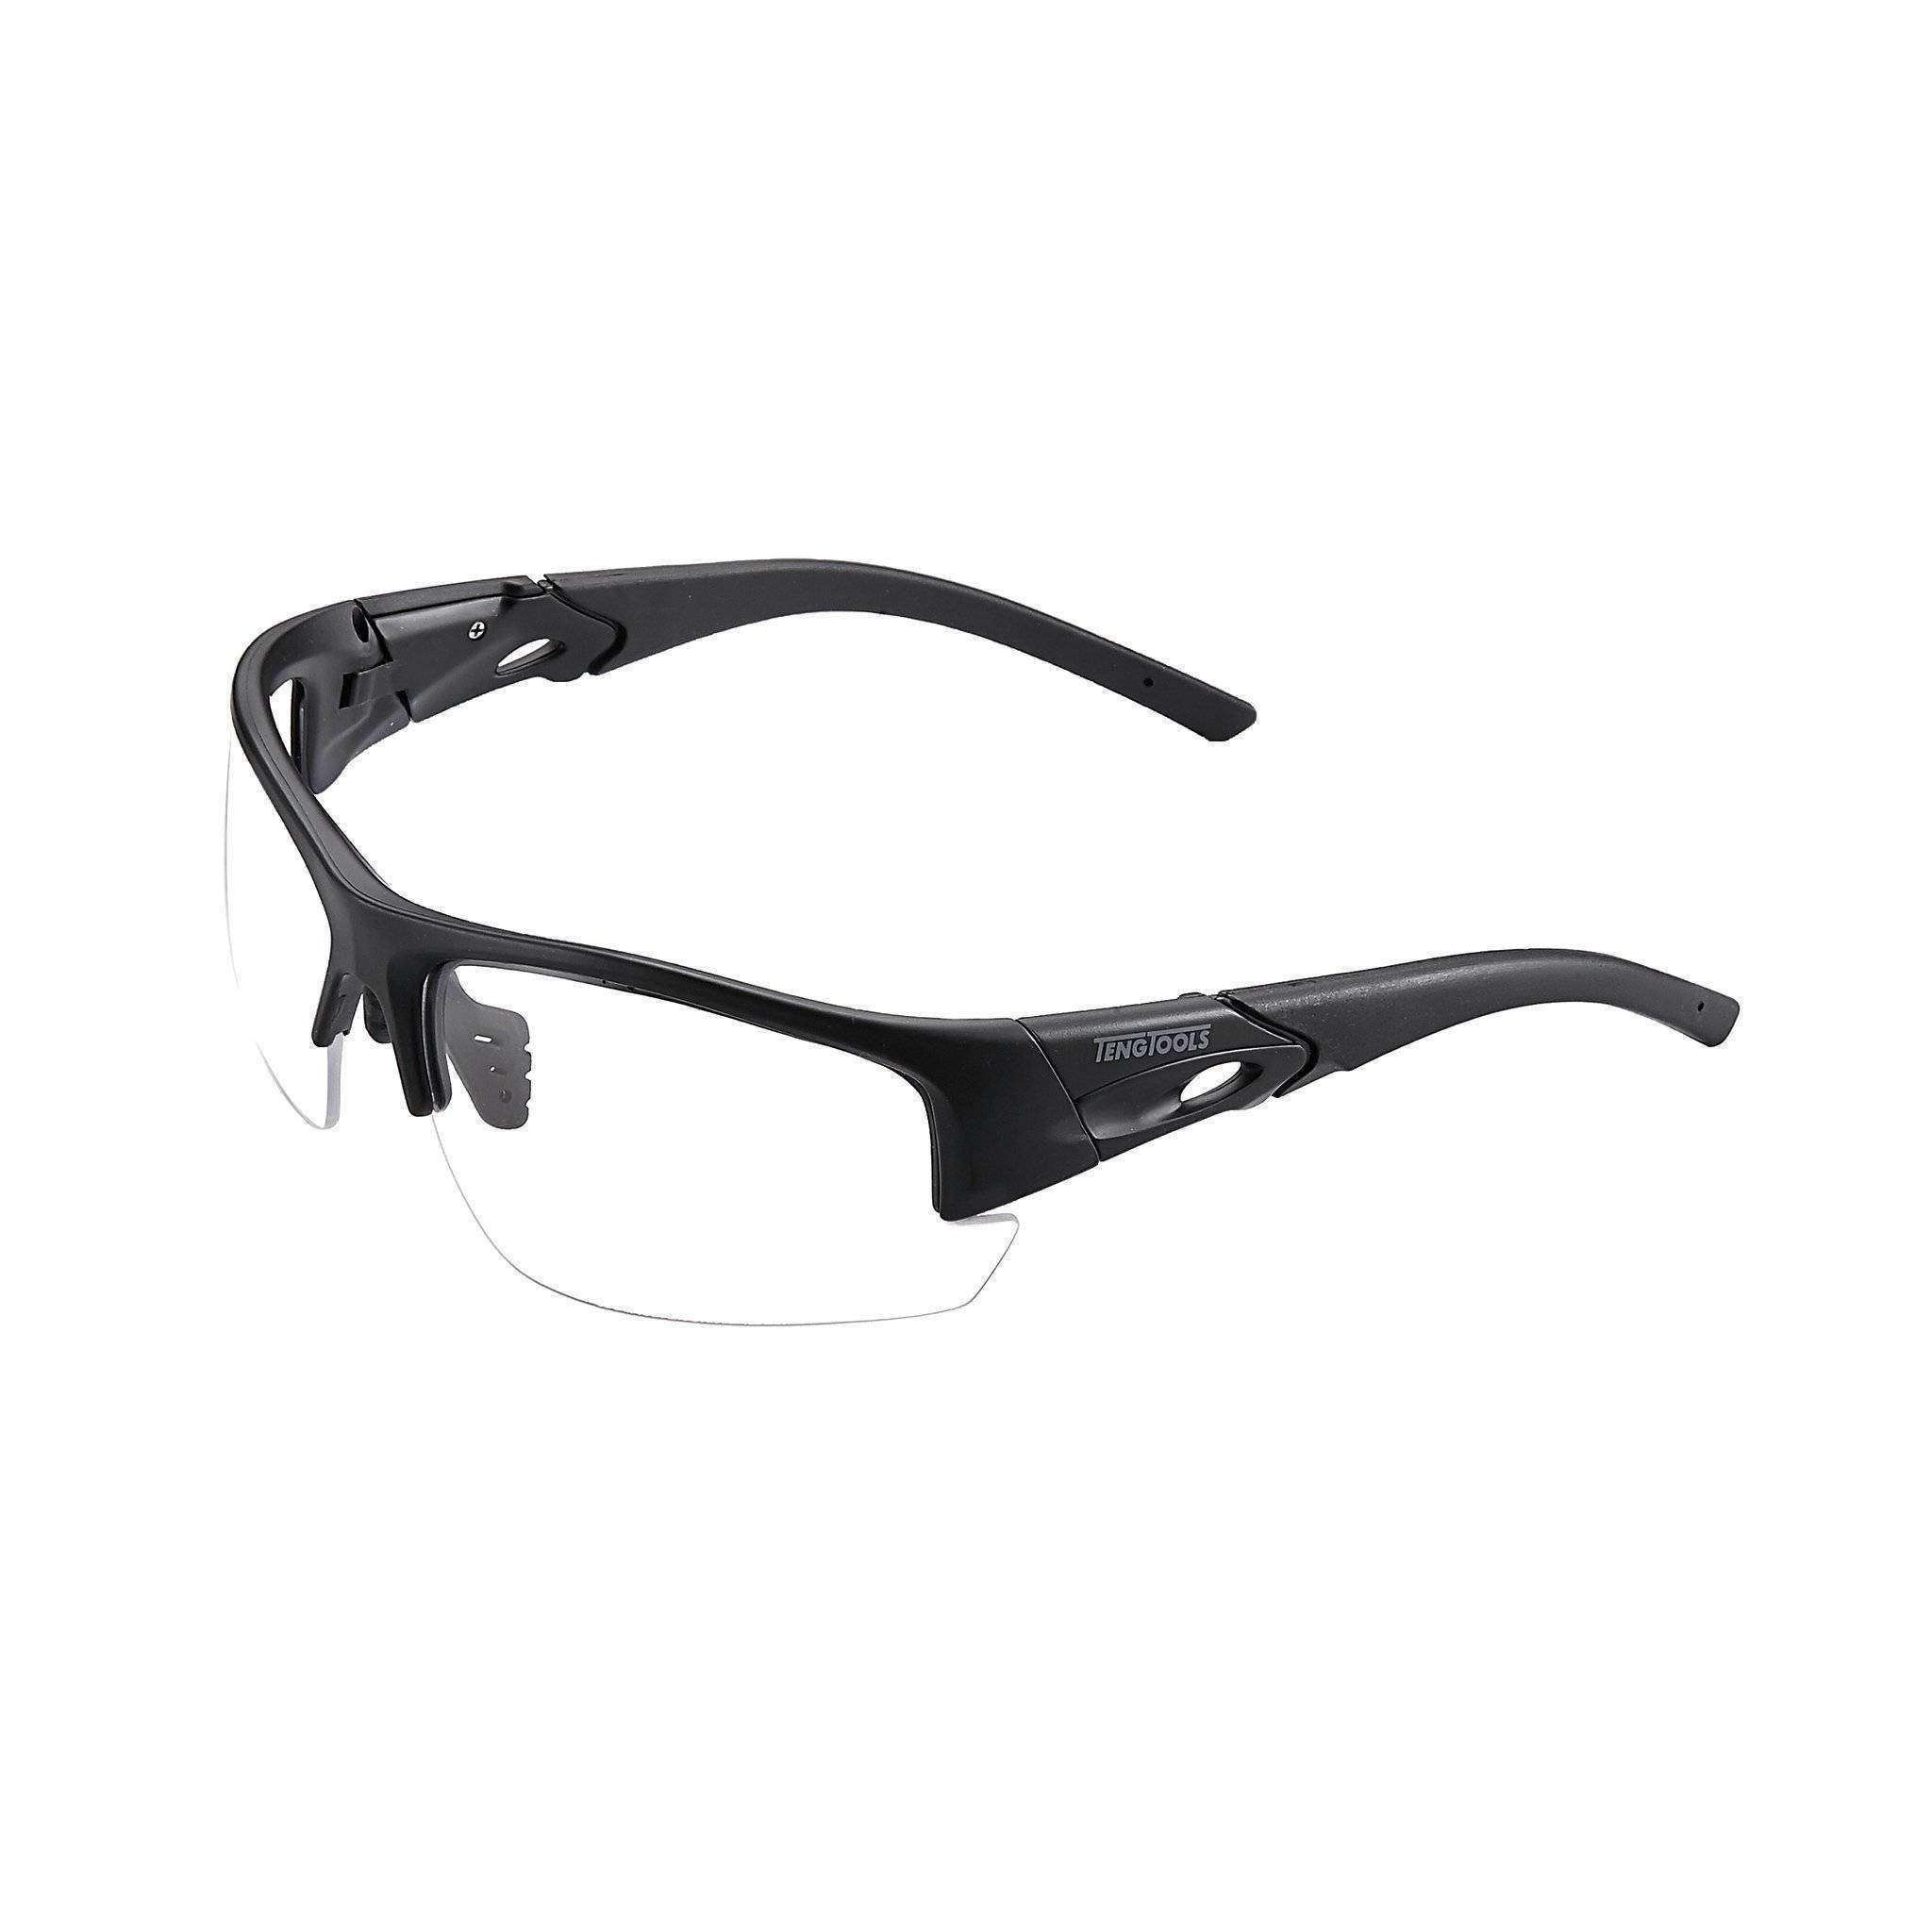 Black Safety Glasses - Clear Lenses - Teng Tools SG003 - Teng Tools USA